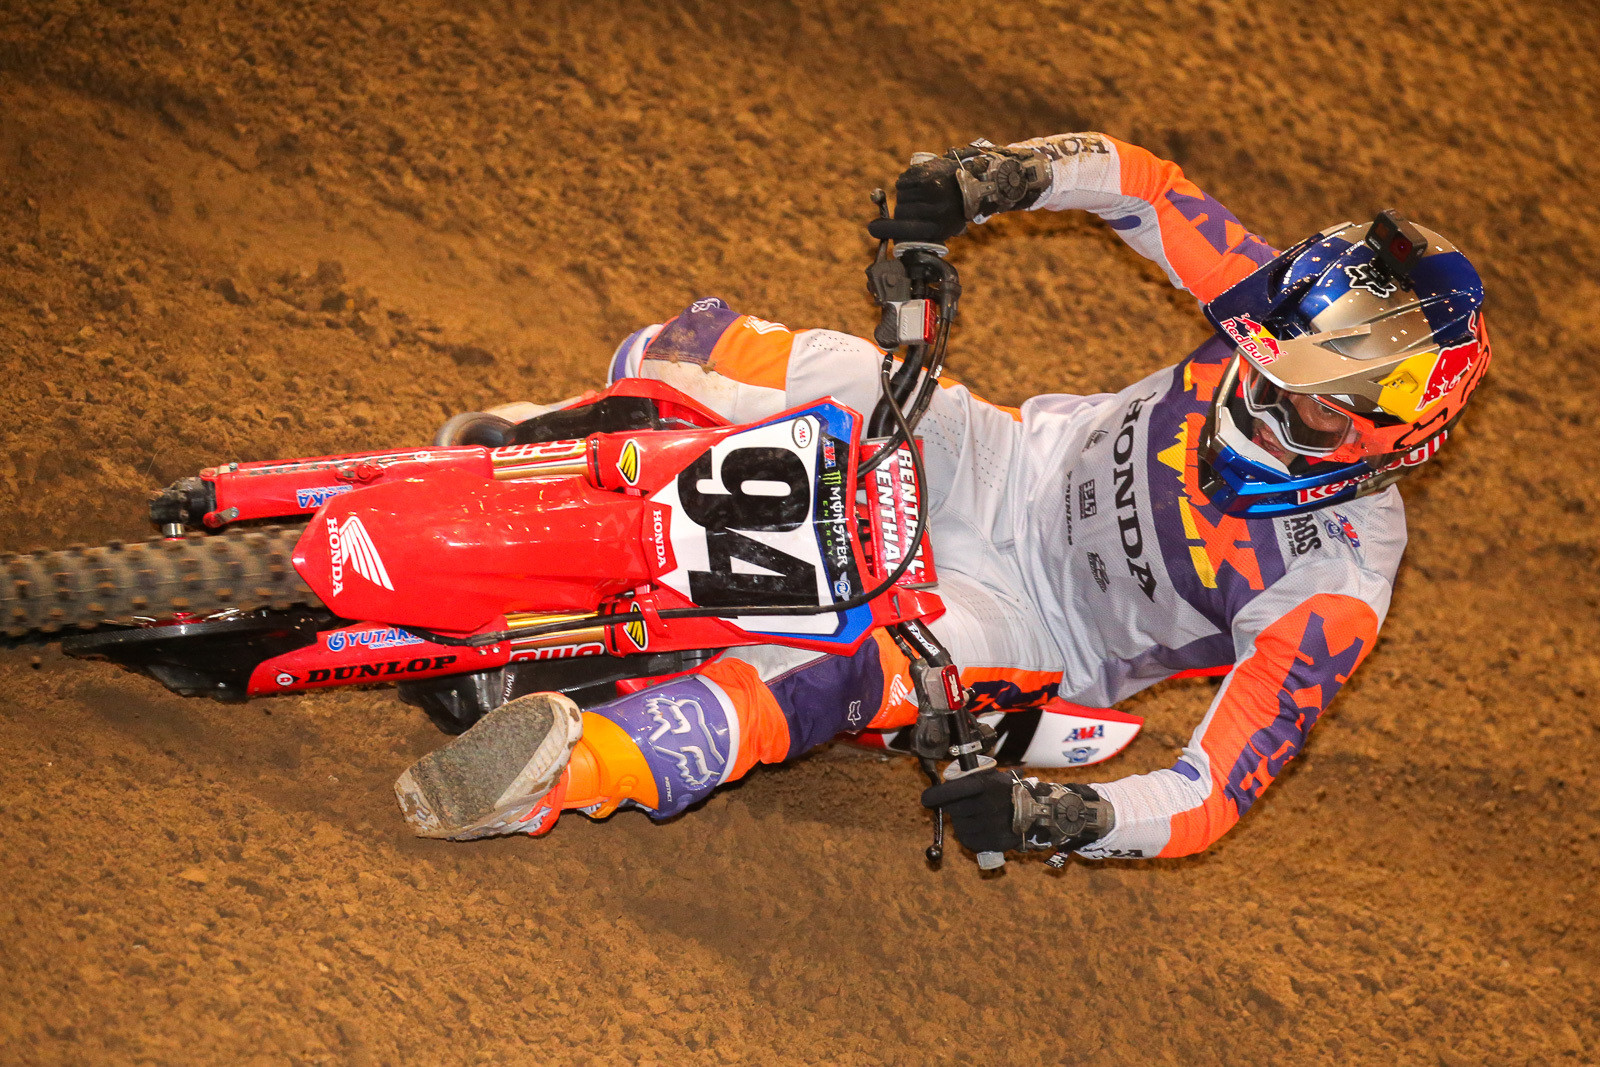 Ken Roczen jumped up four spots in the 450 standings, into second place with his long-awaited win in St. Louis.